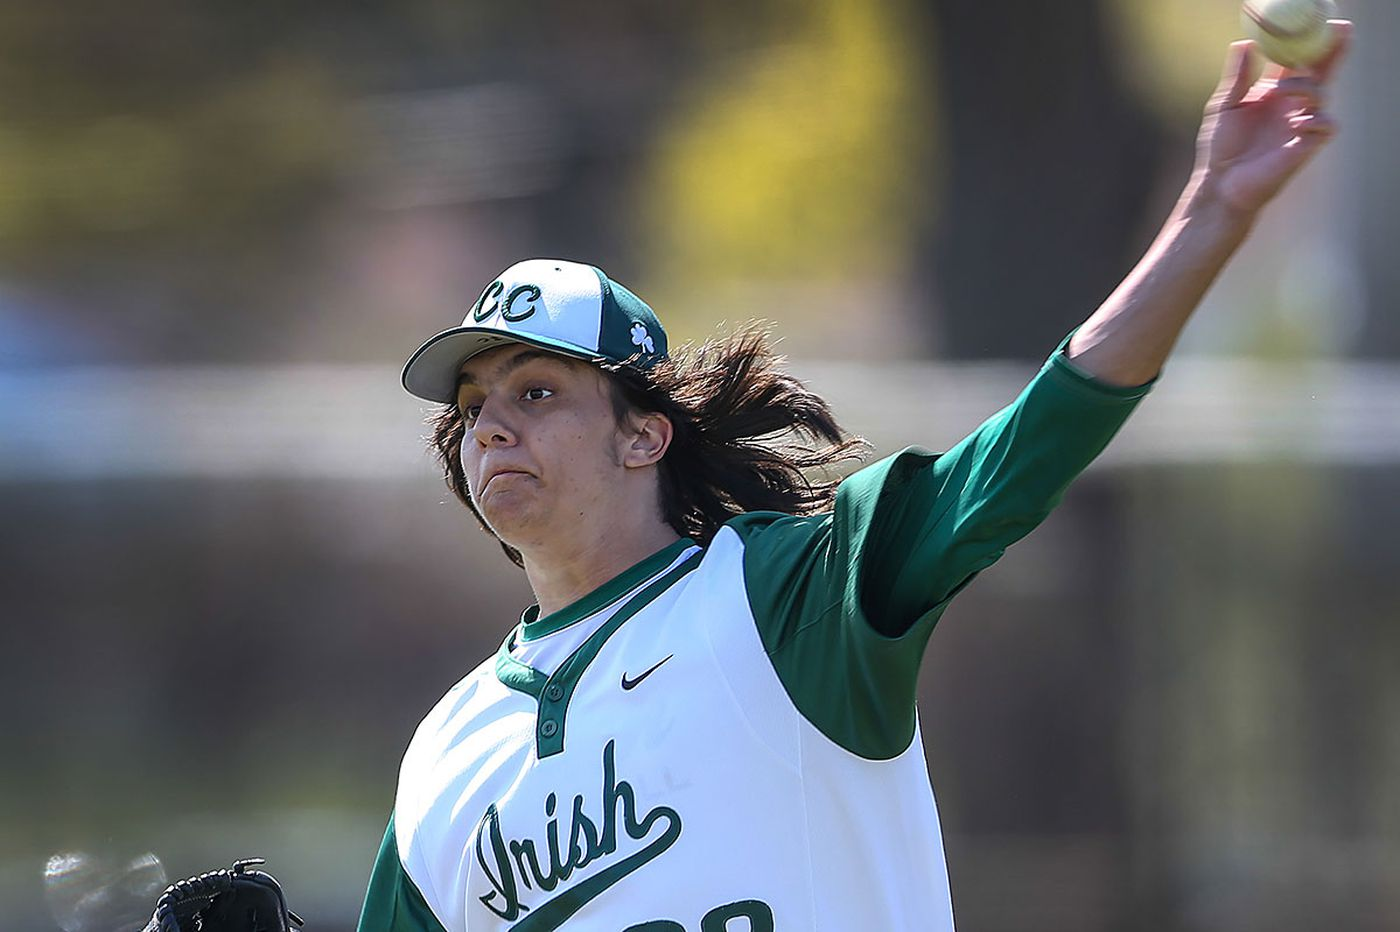 Camden Catholic pitcher Crusemire is in command